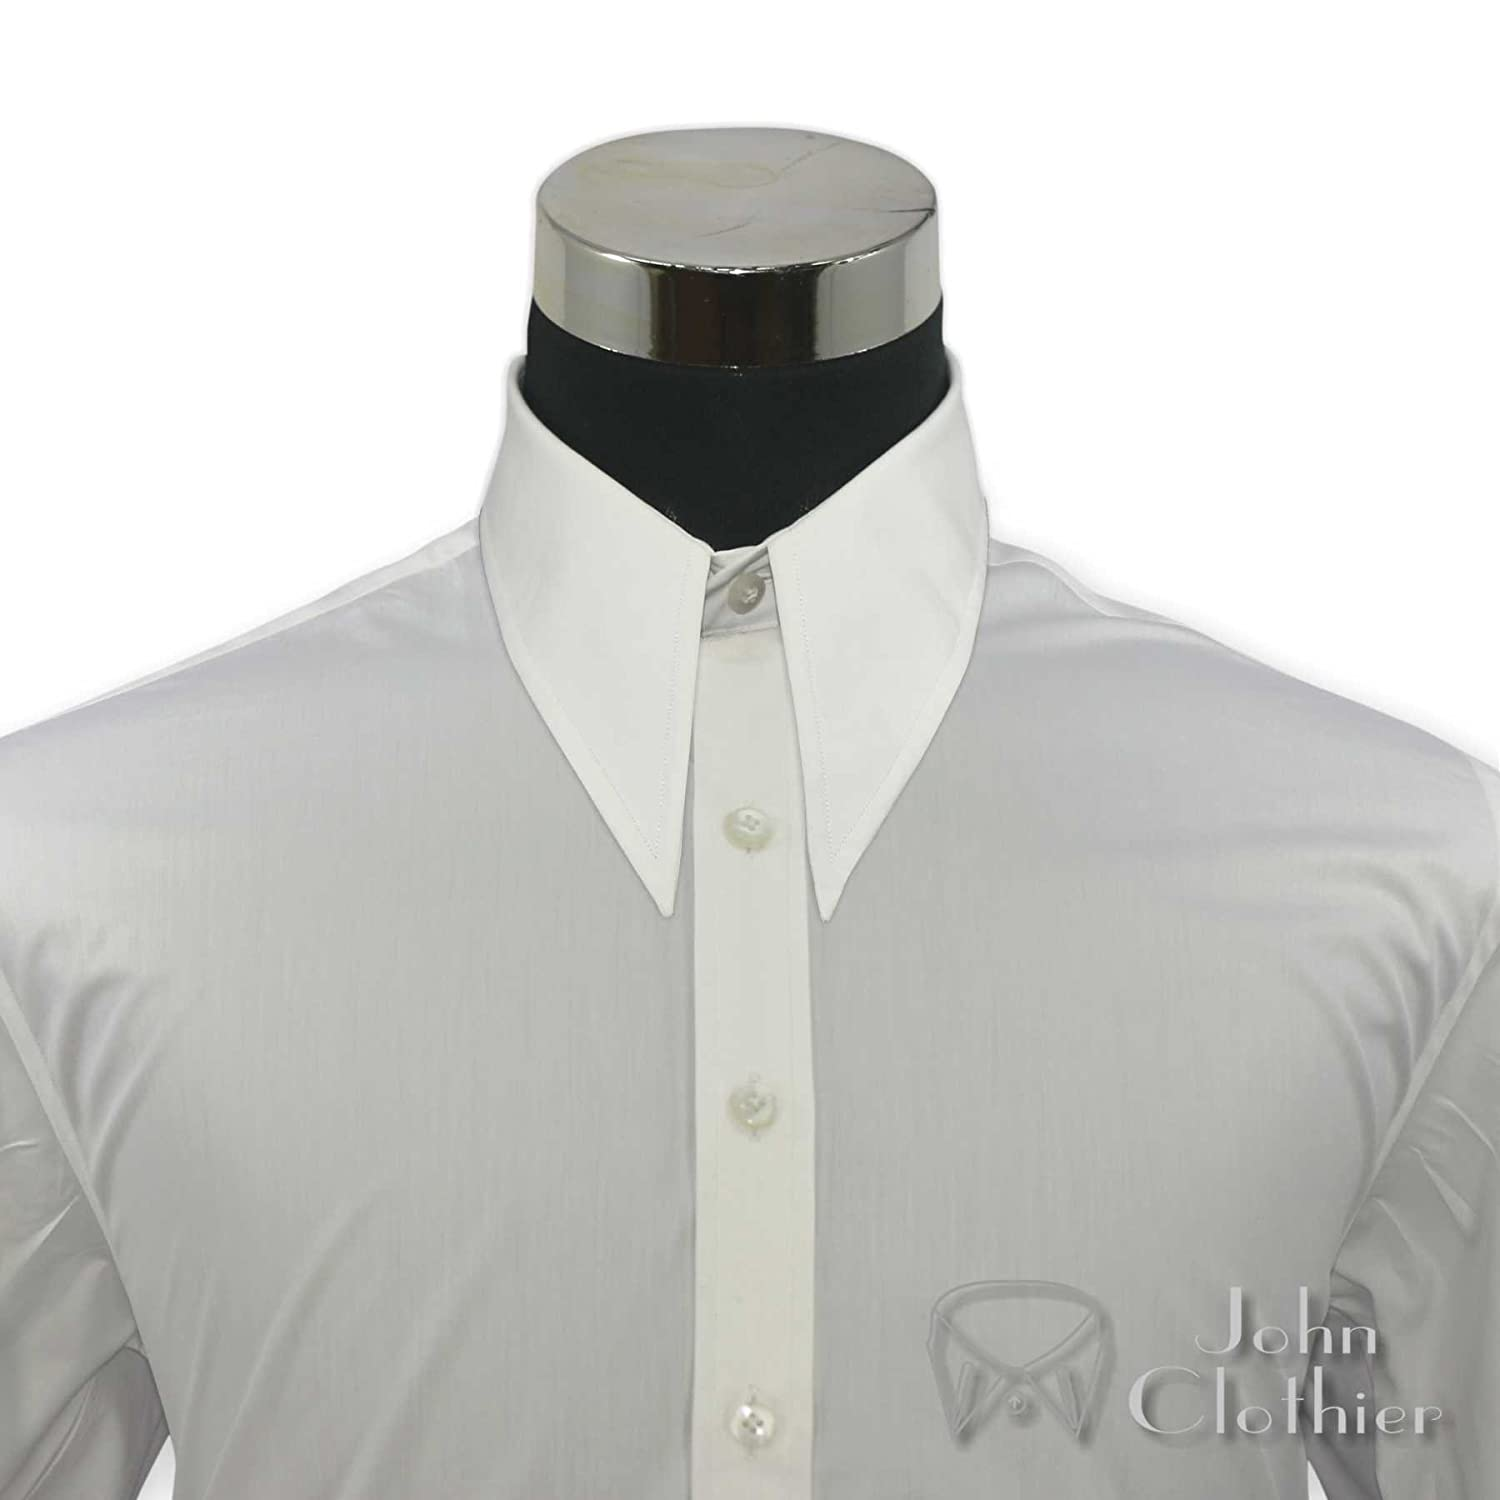 1940s Mens Clothing Mens Spear Point Collar White Shirts Vintage Classic 100% Cotton Relax fit Shirts $89.99 AT vintagedancer.com